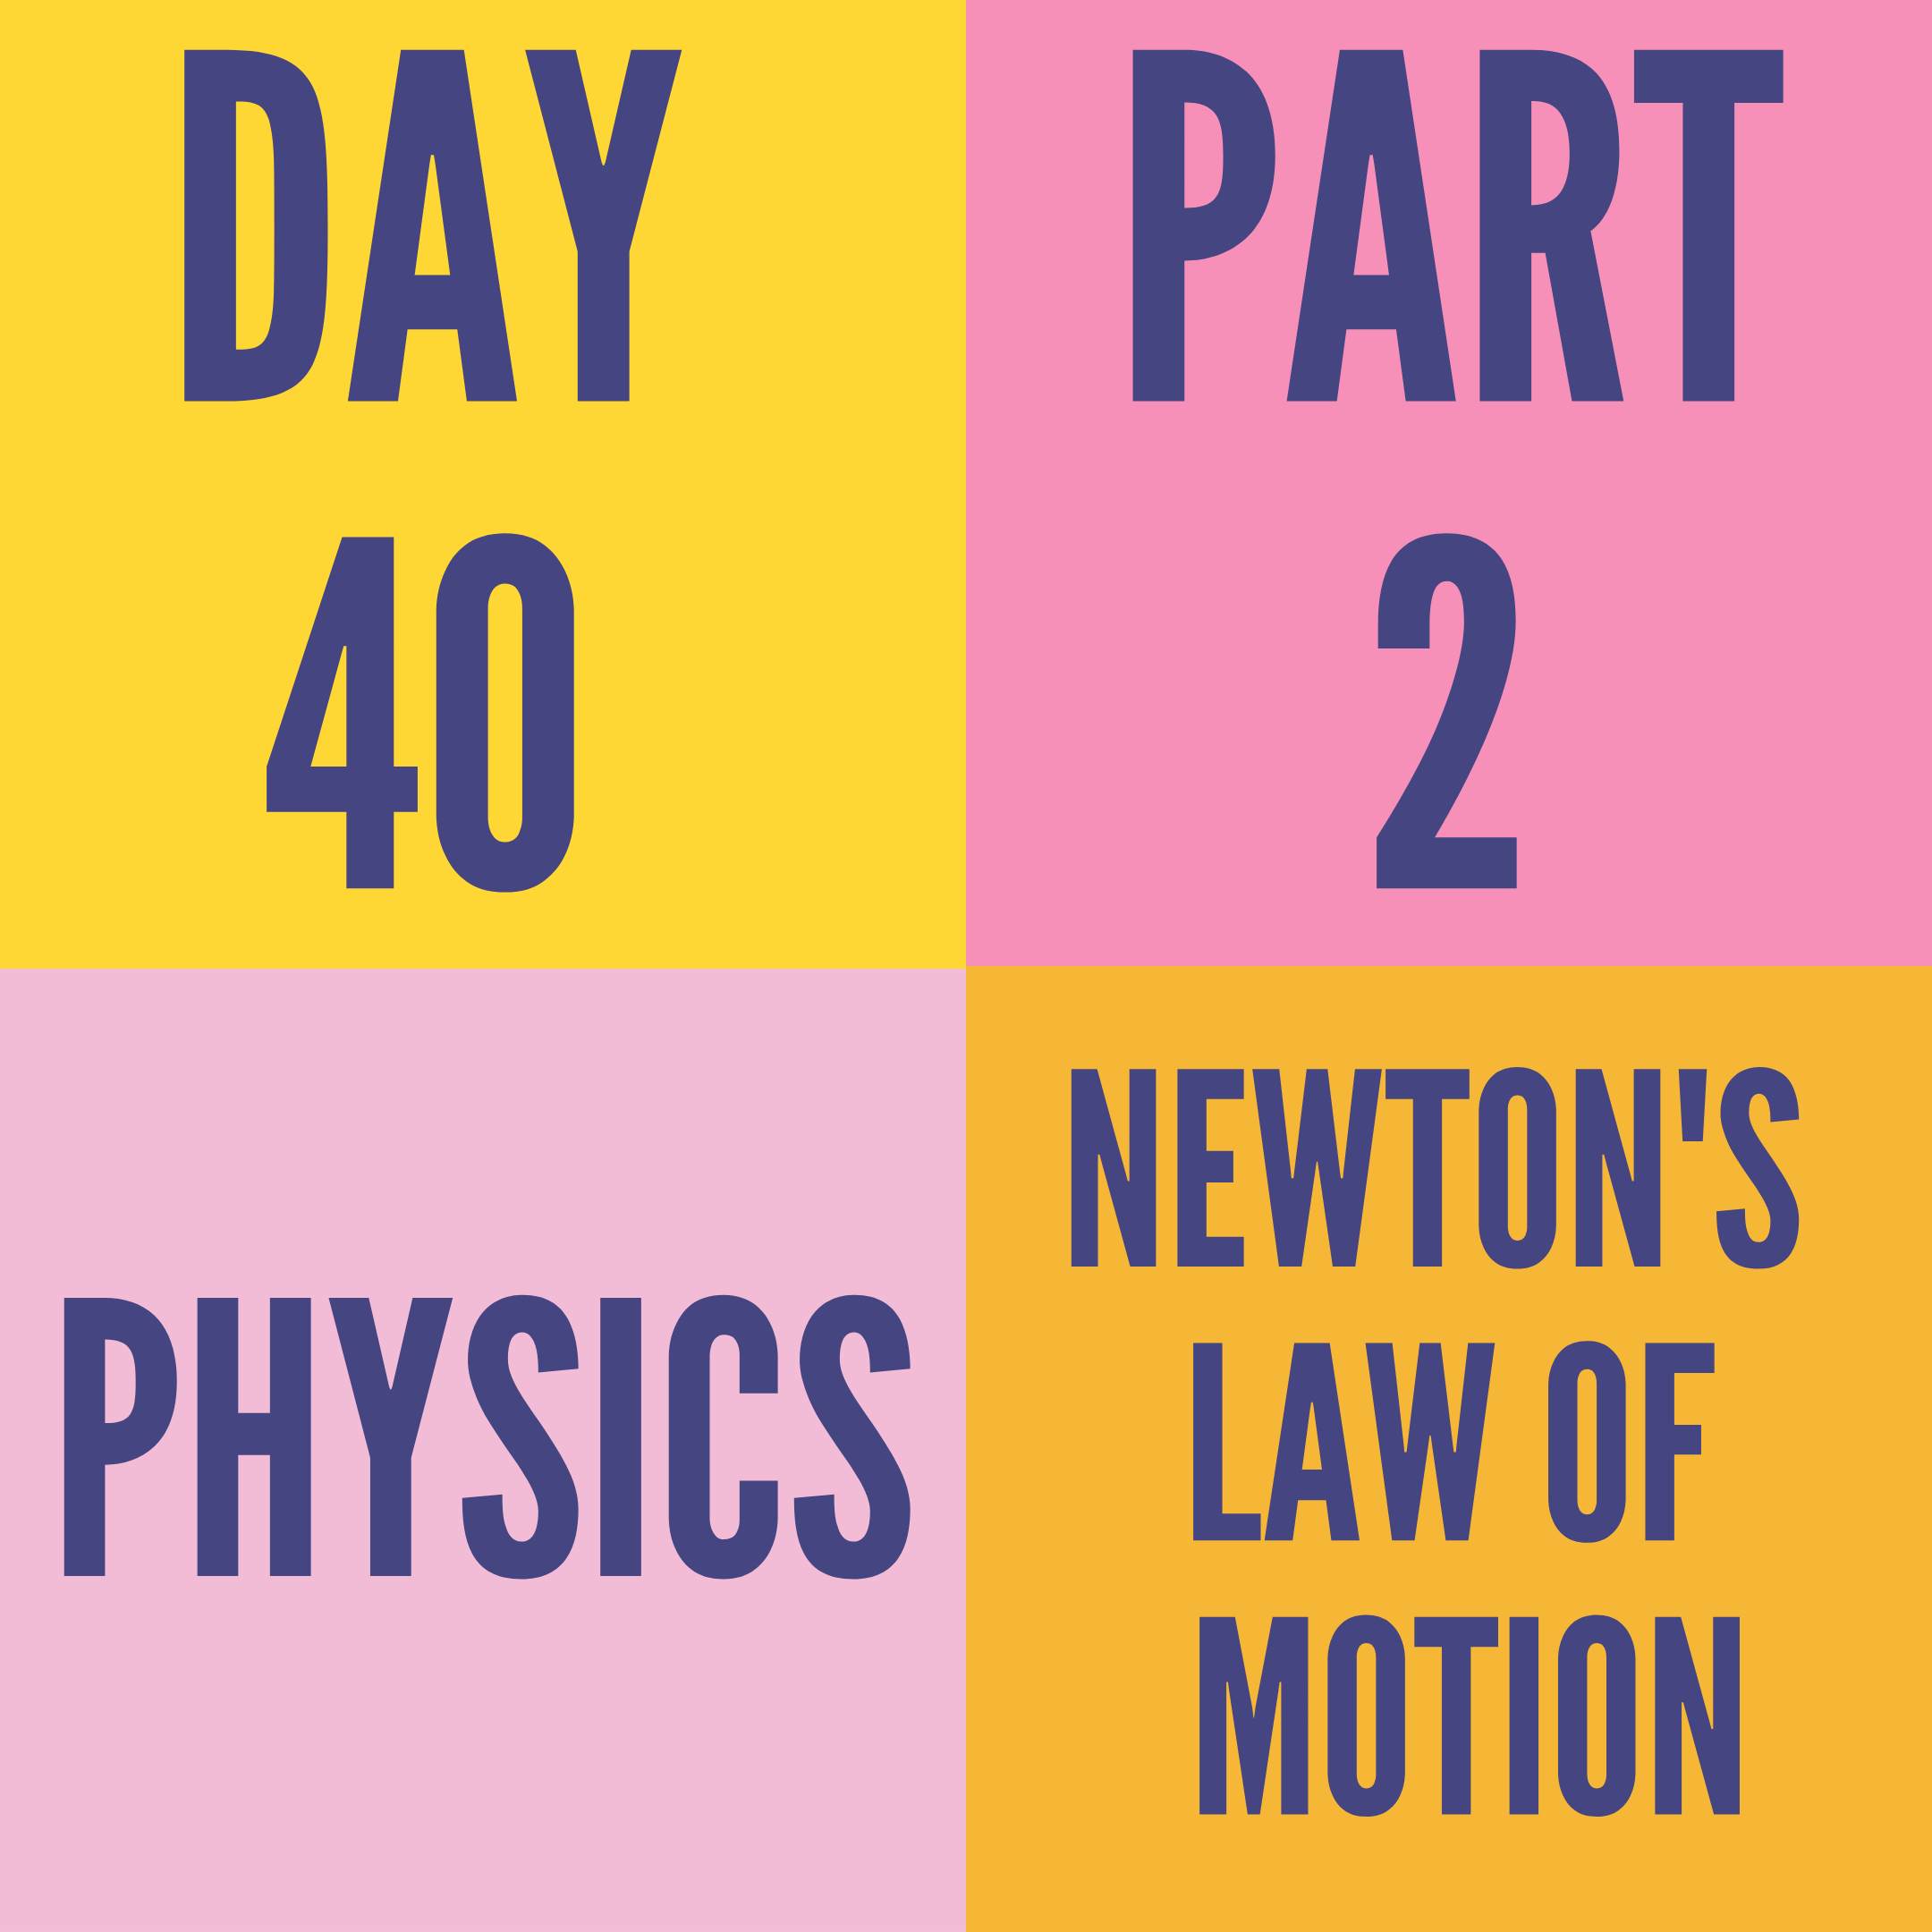 DAY-40 PART-2 NEWTON'S LAW OF MOTION